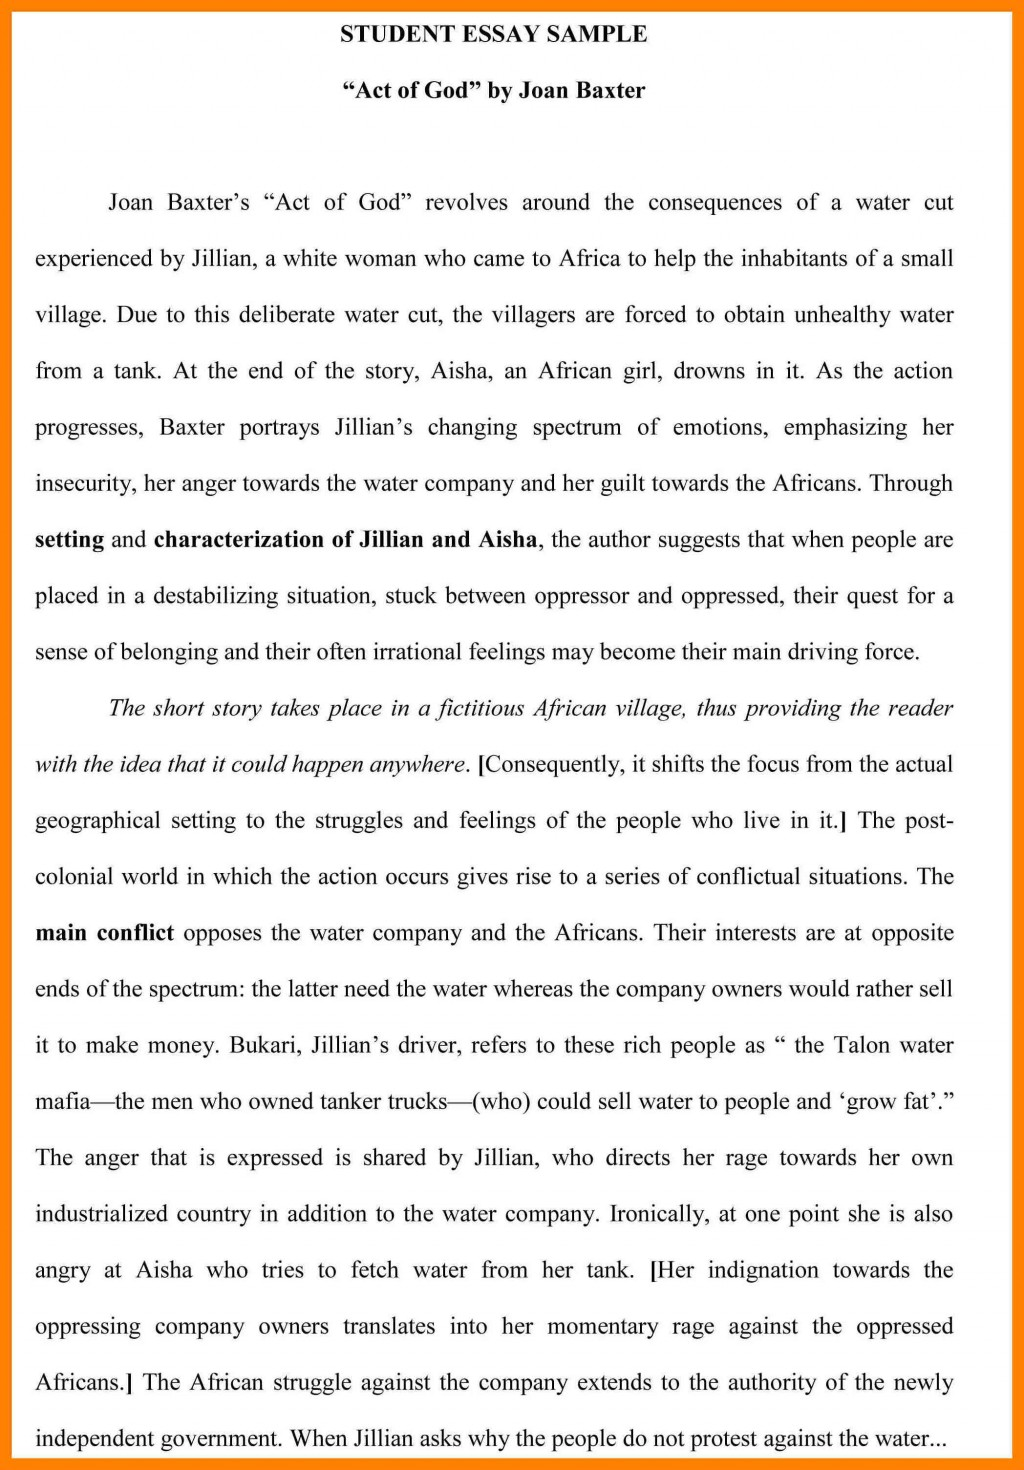 004 Essay Example How To Write An Act Sample Math Test Elmifermetures Com Ideas Collection Awesome Of Livesto Essays Pdf New Topics Dreaded Examples Template Large